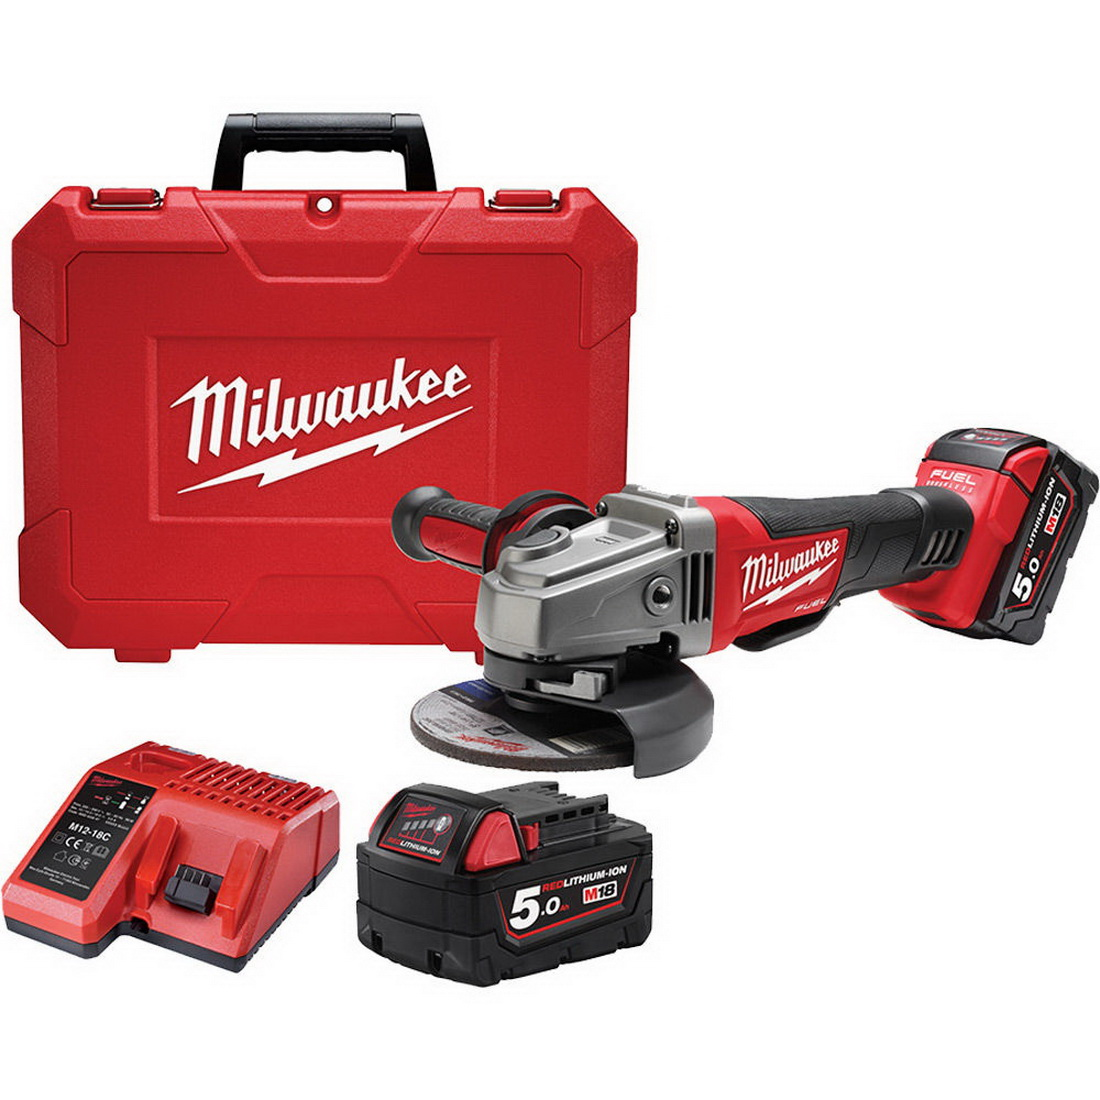 M18 FUEL Cordless Angle Grinder Kit 125mm